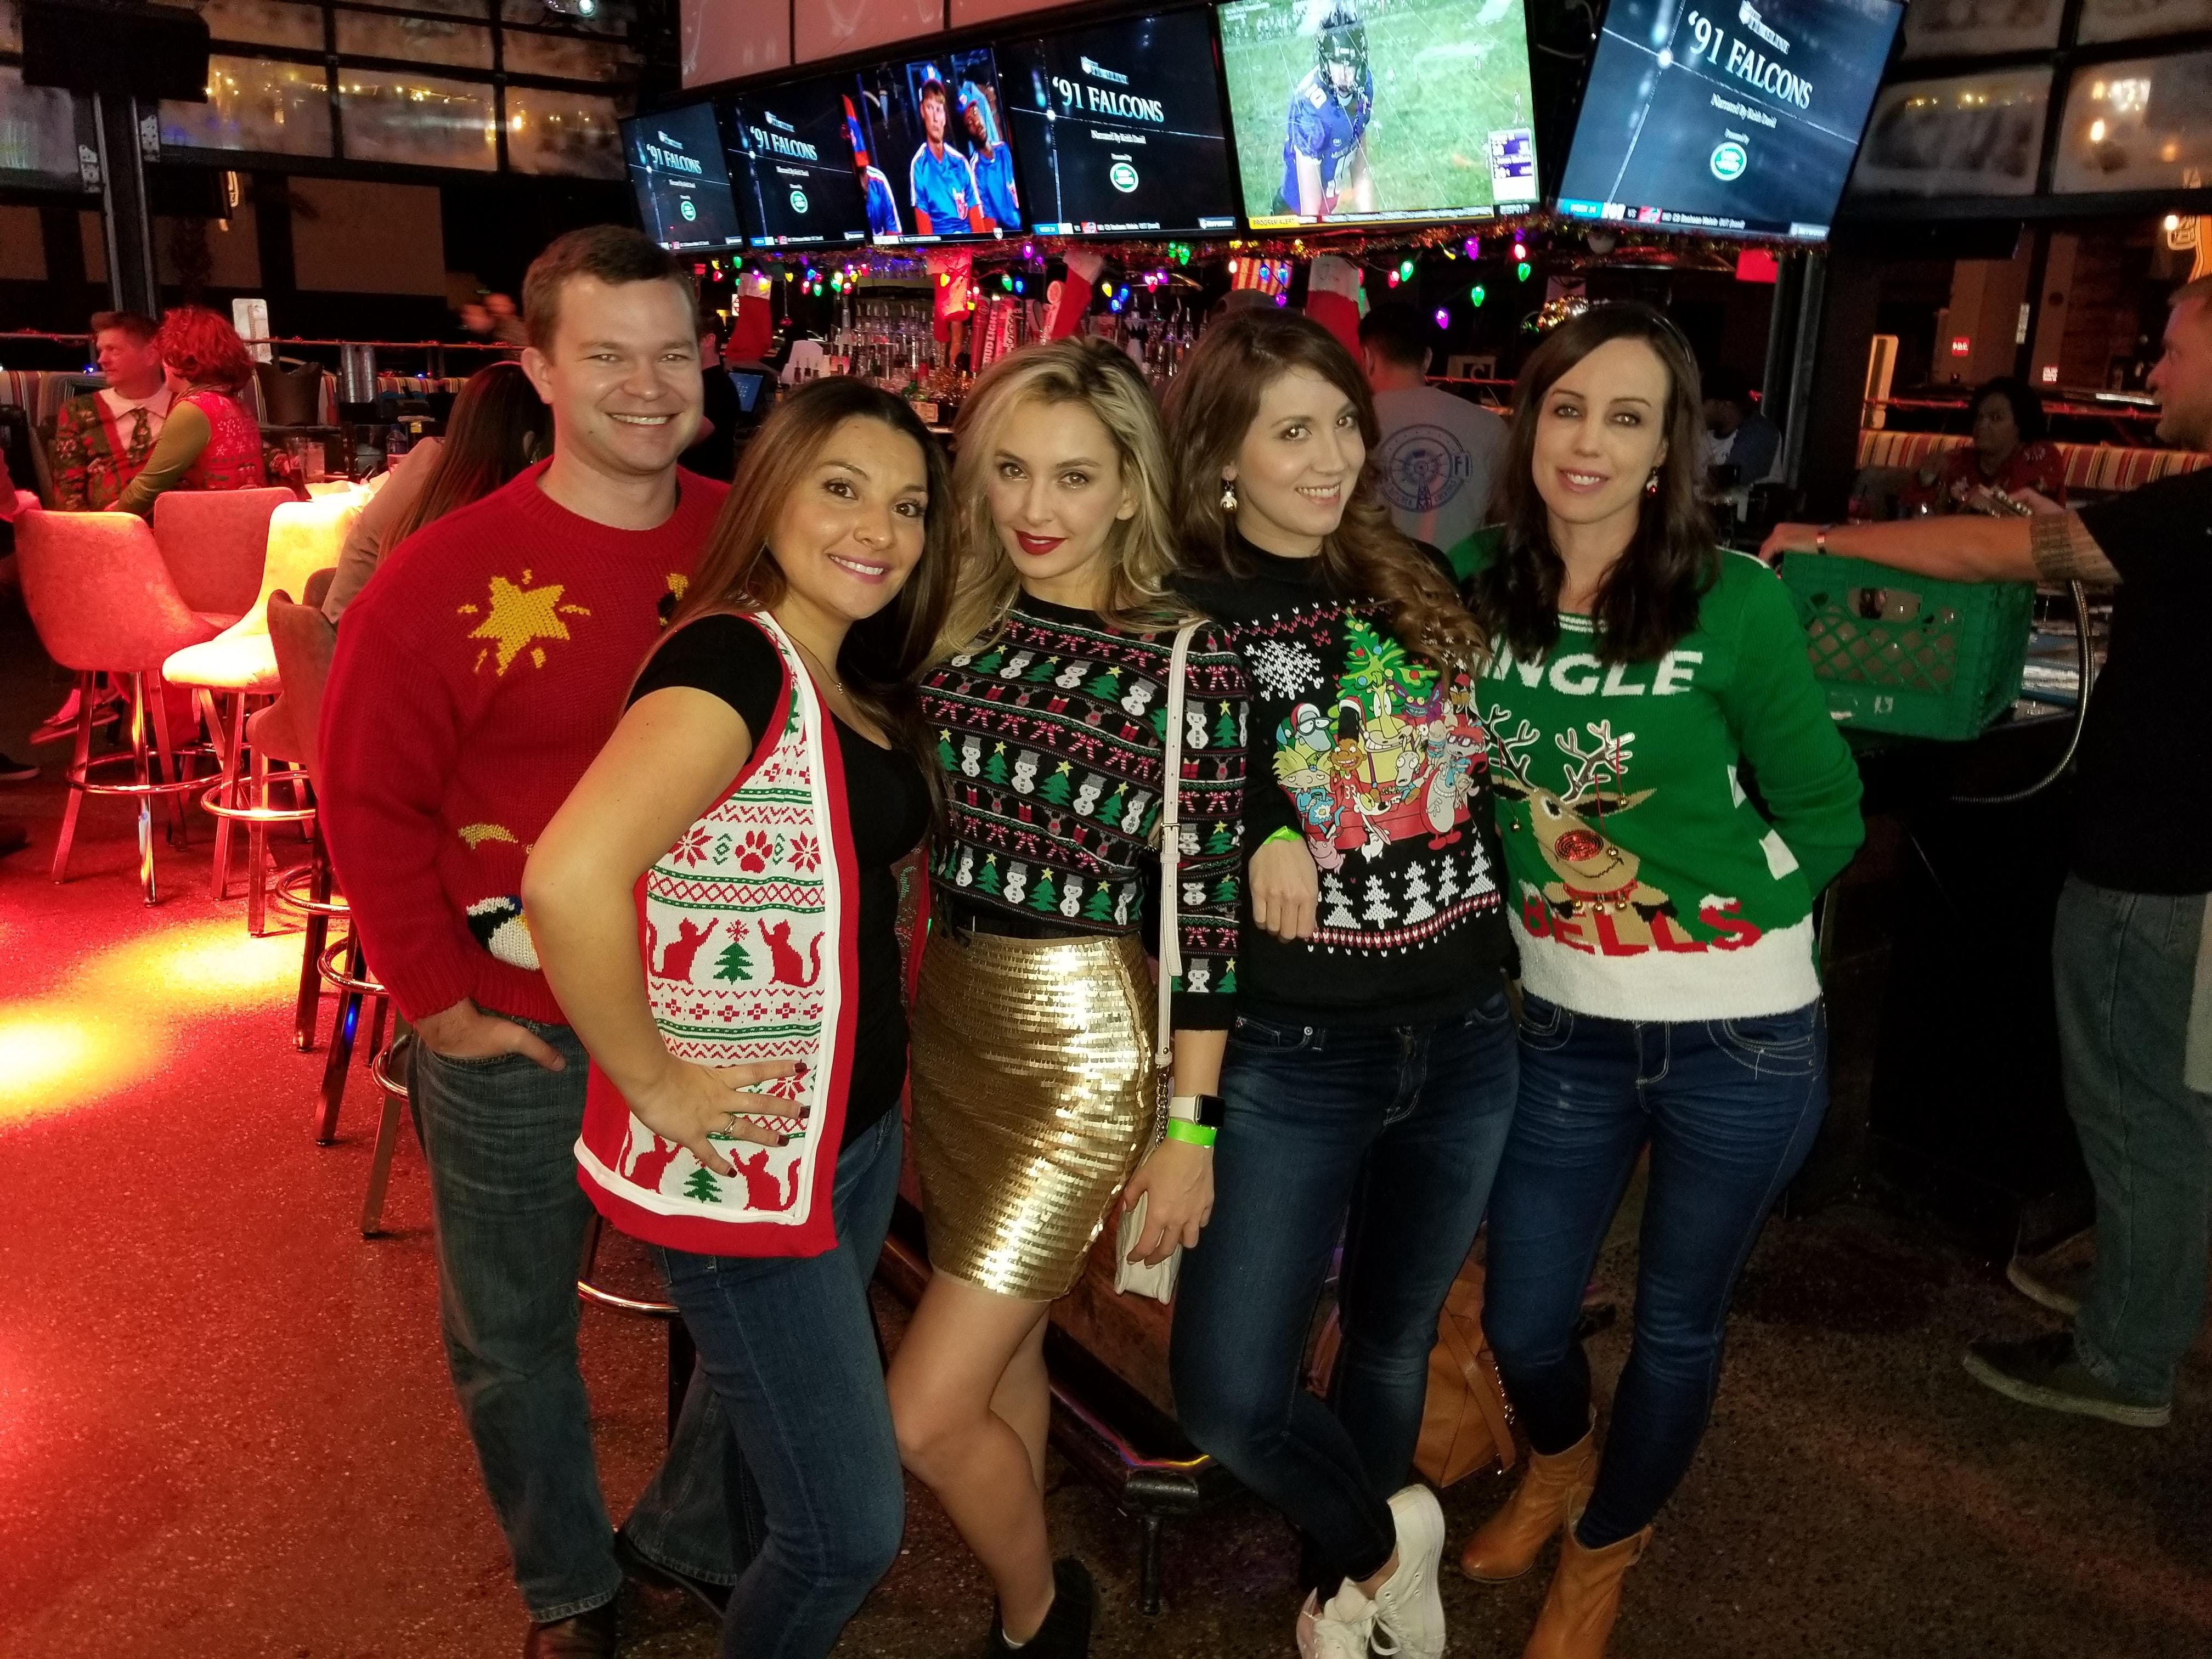 Ugly-Sweater Party.